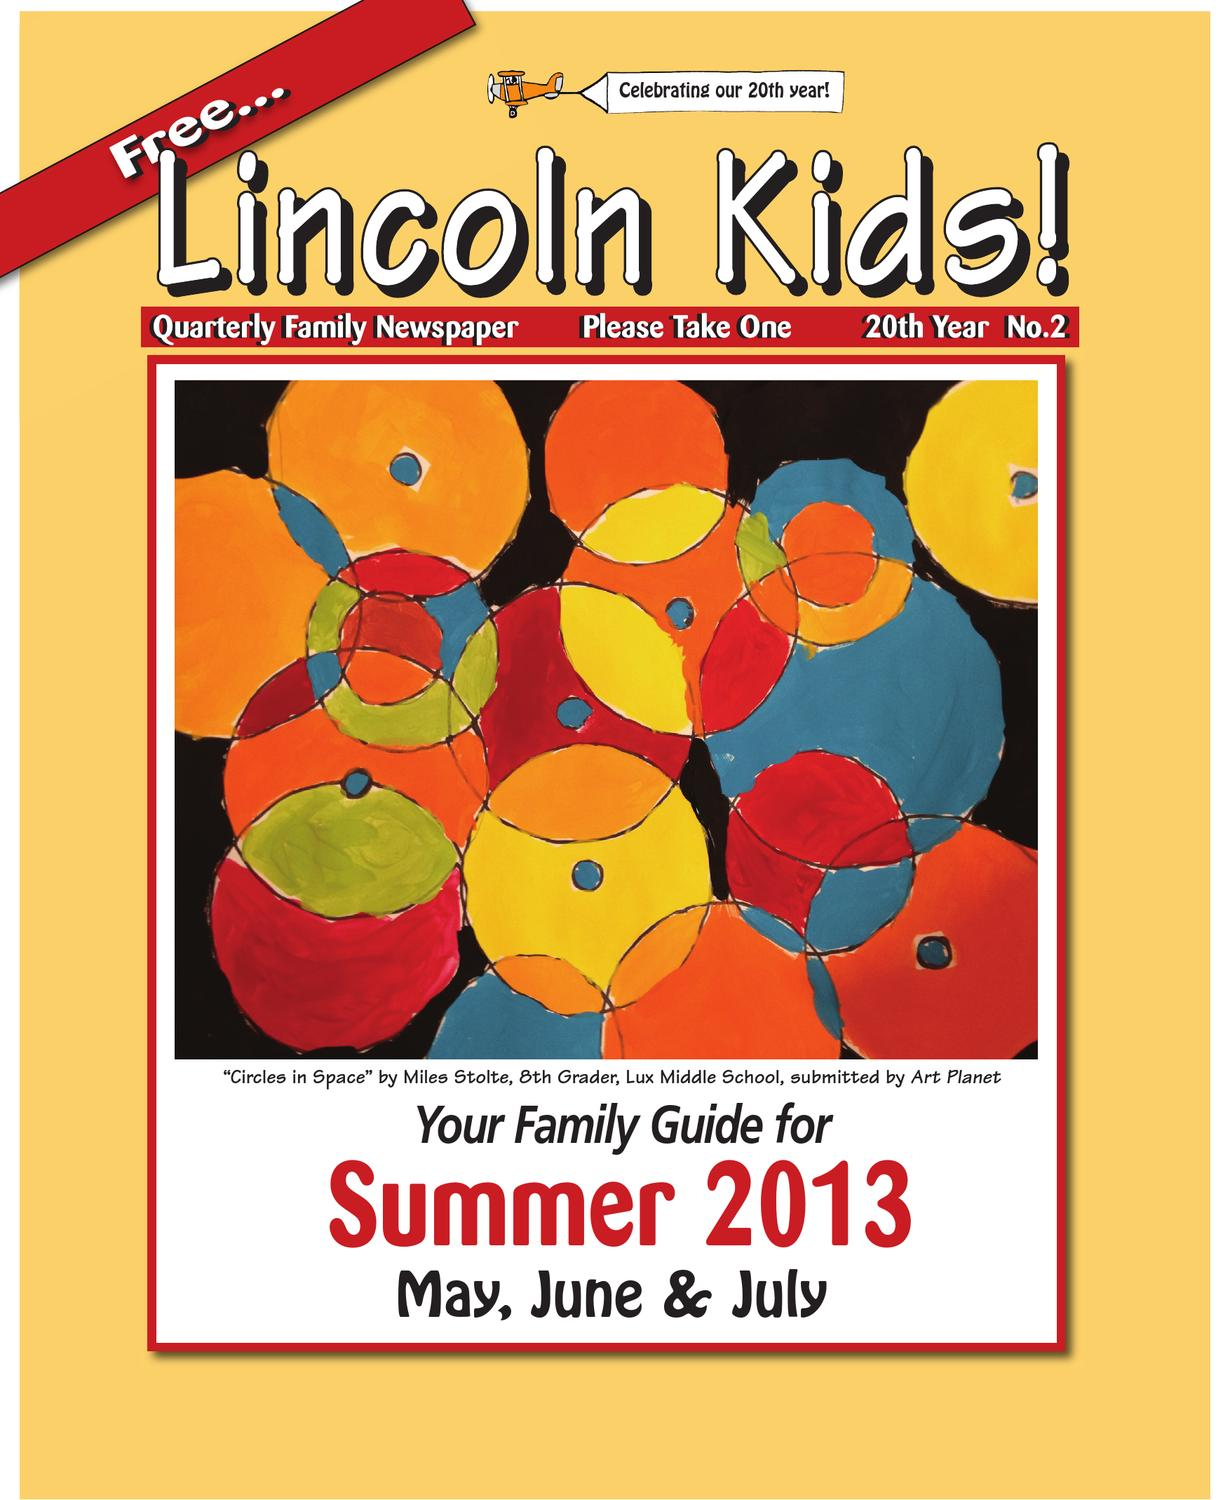 Lincoln Kids newspaper Summer 2013 Issue by Lincoln Kids! newspaper - issuu